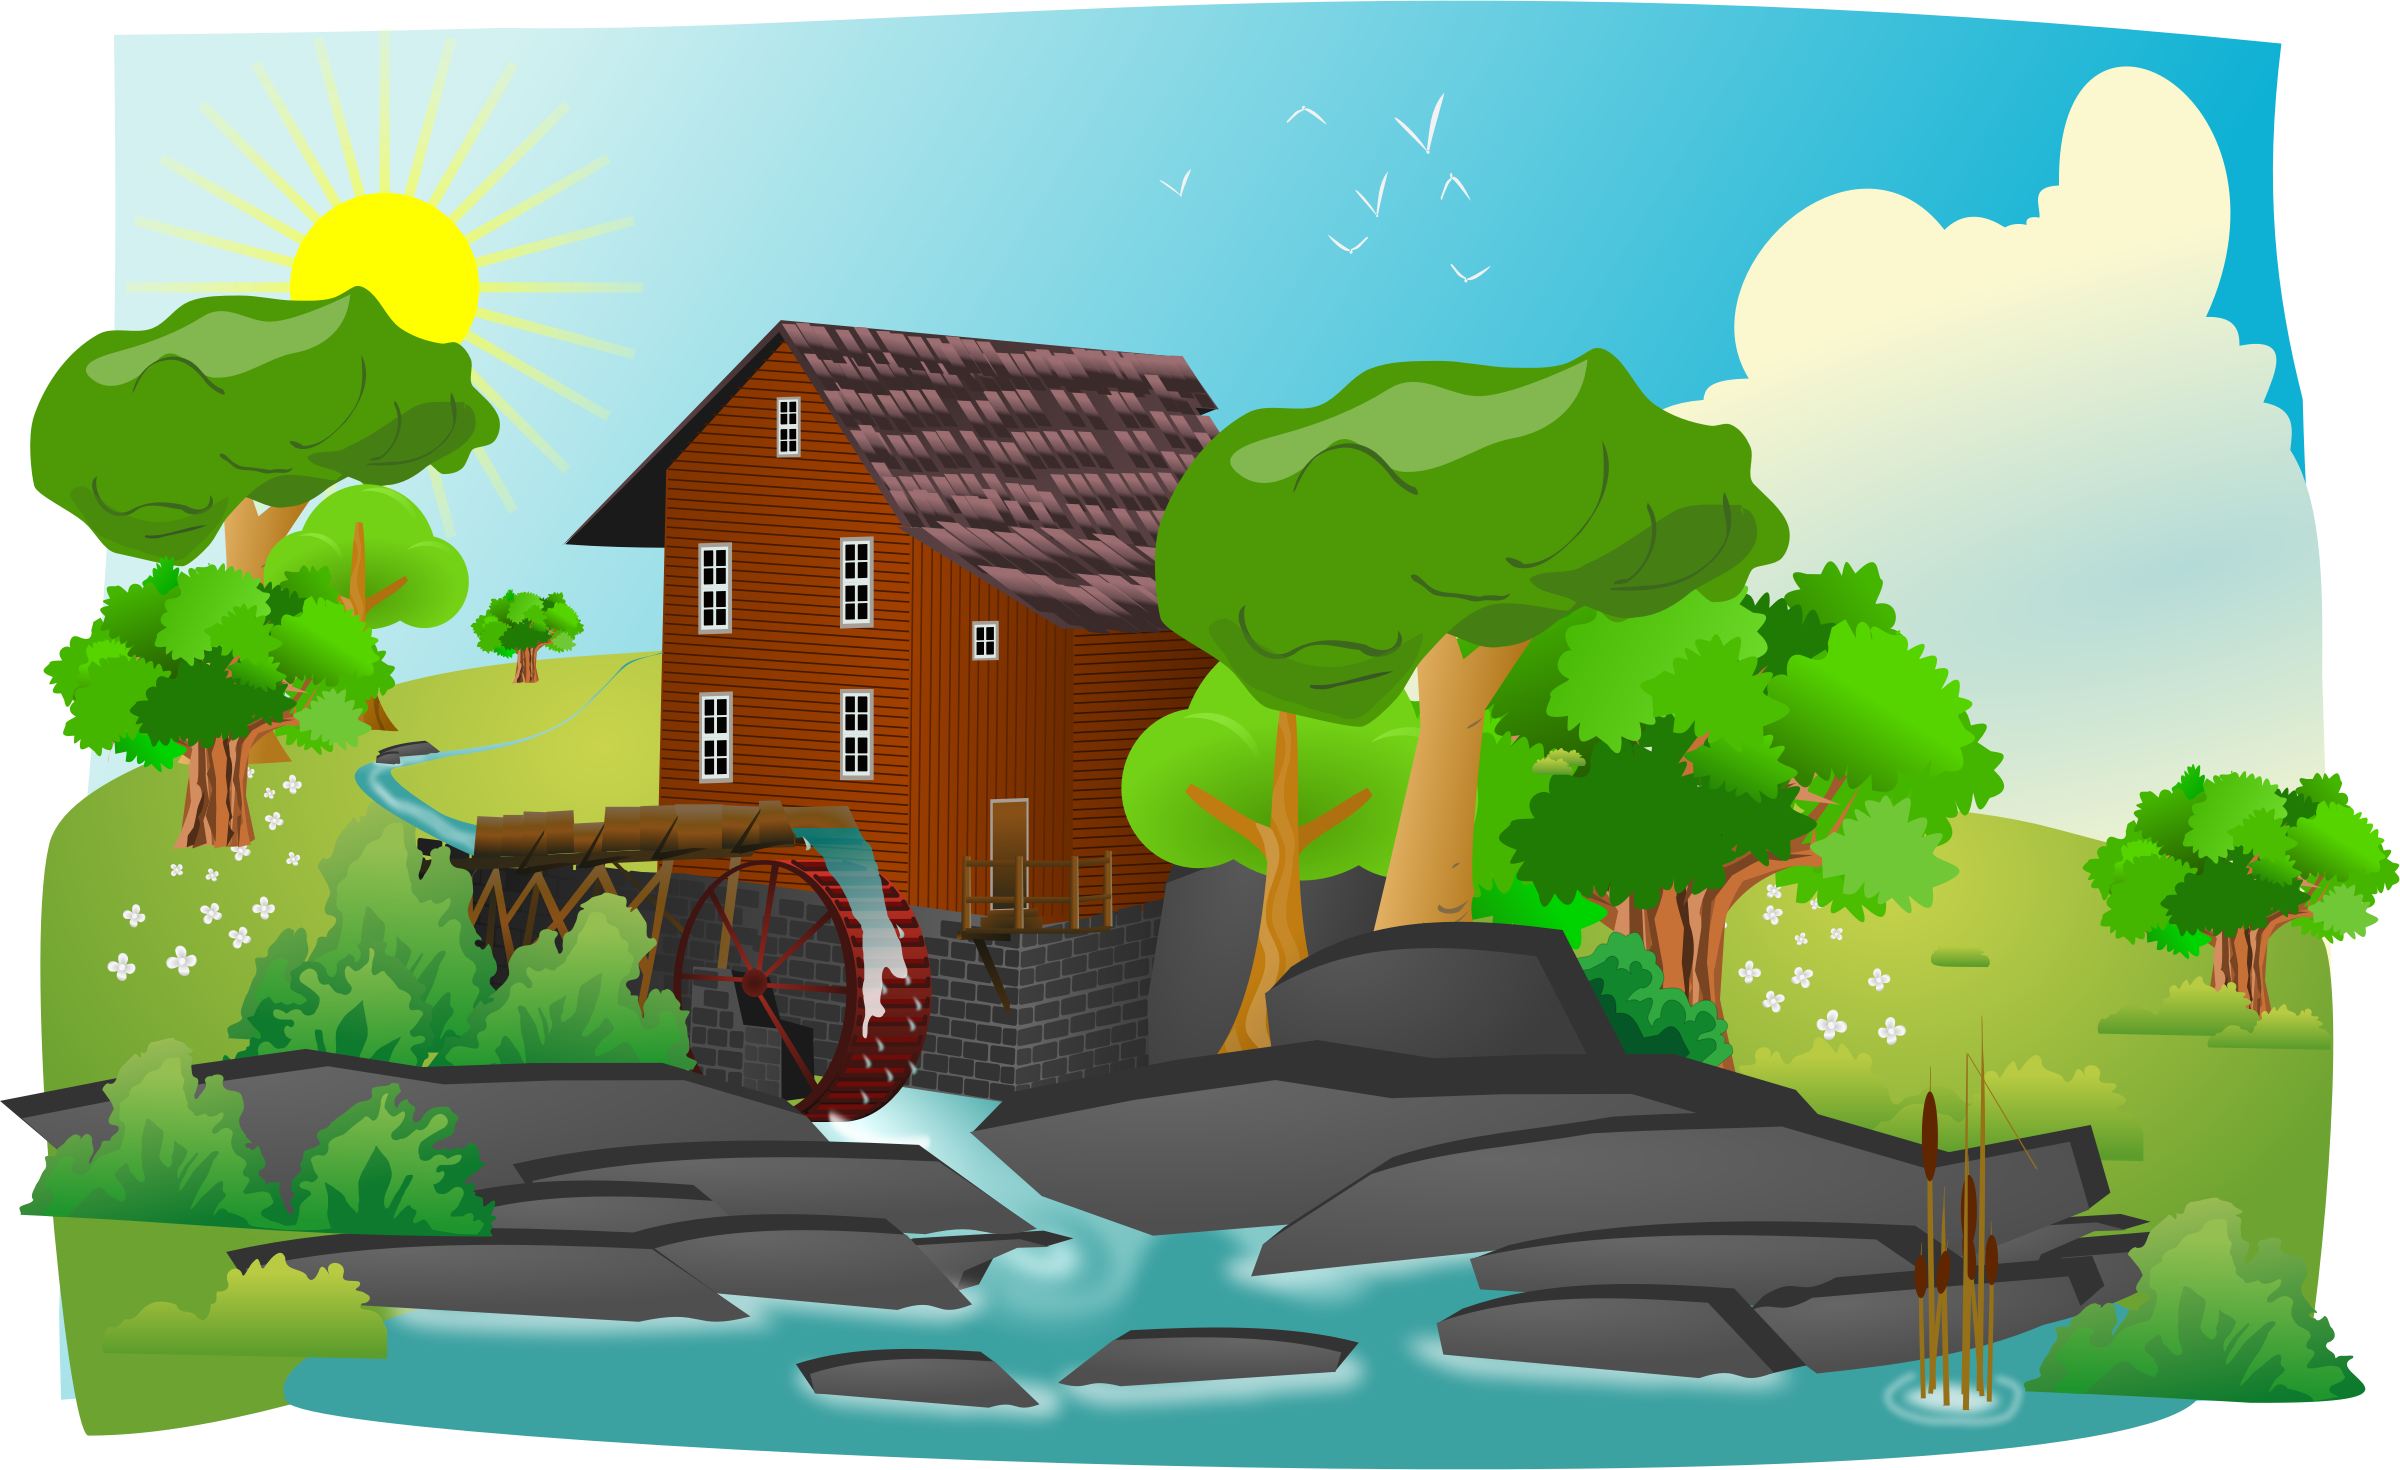 clipart watermill place mill water places landscape cliparts clip quality lanscape domain clipartlord publicdomainfiles country library clipground tree simple cyberscooty